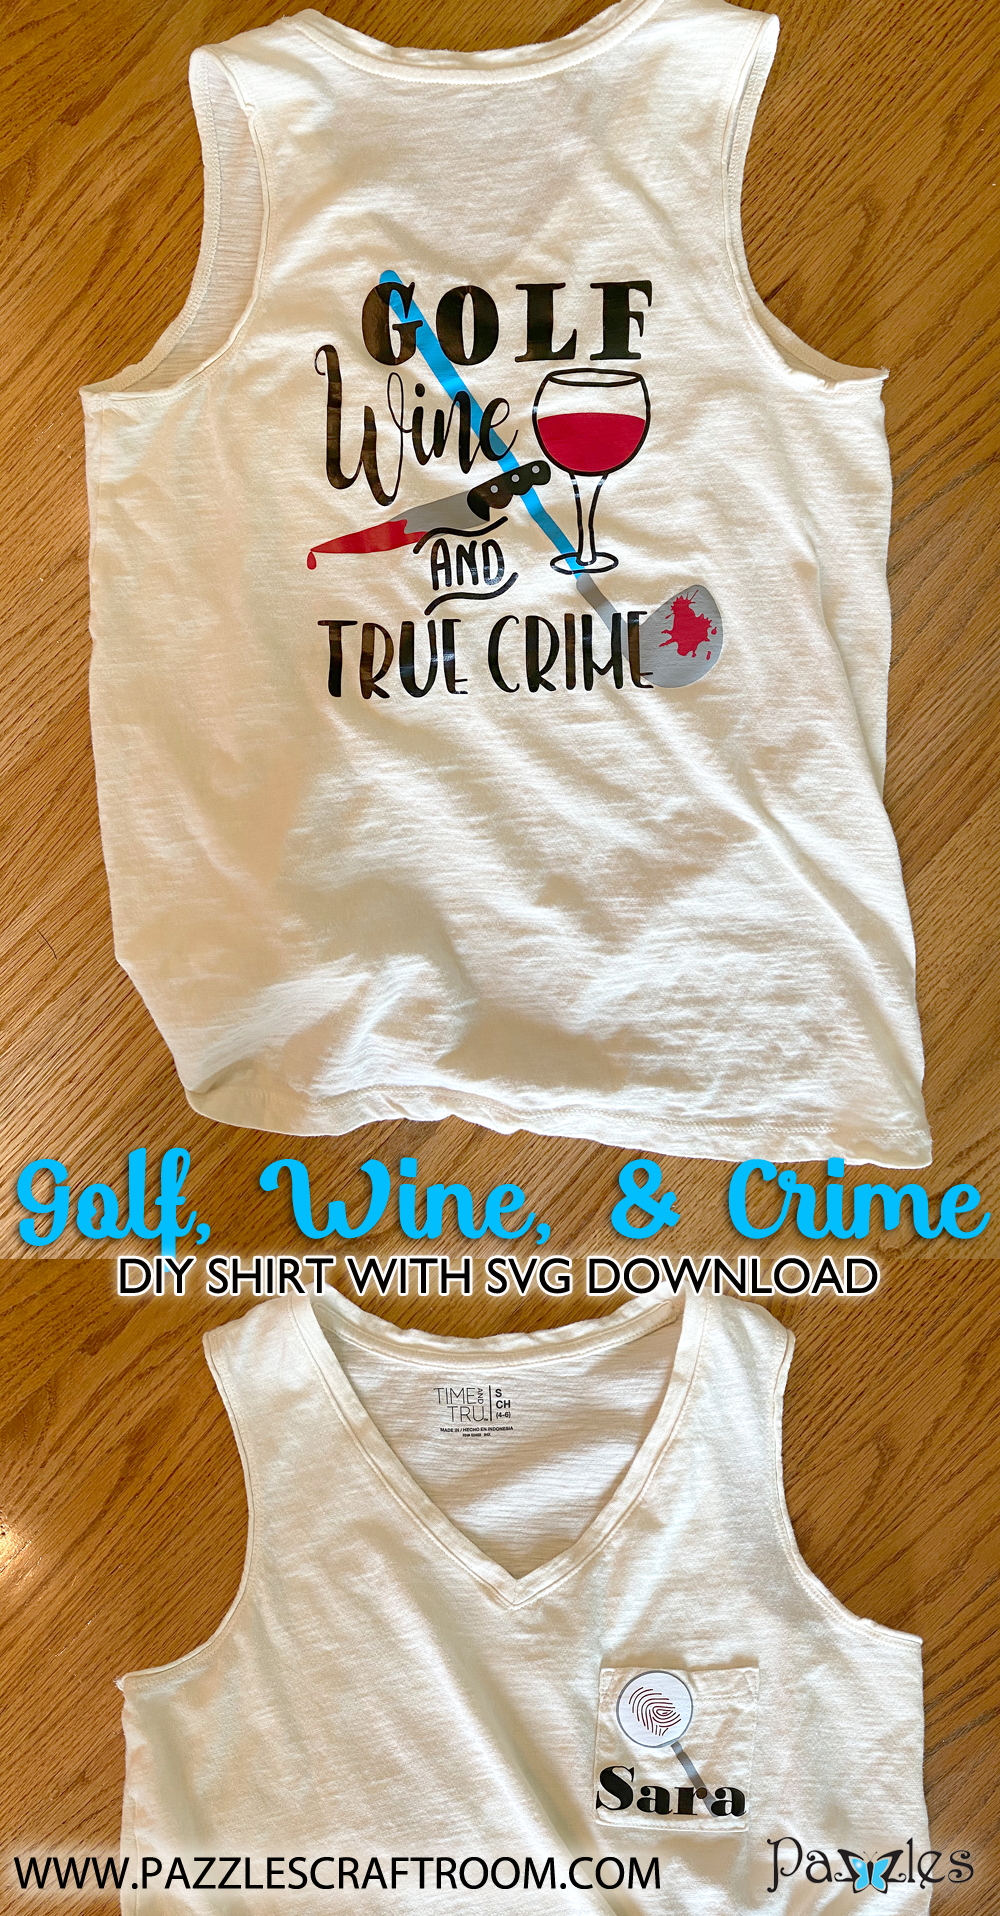 Pazzles DIY Golf Wine and True Crime shirt with instant SVG download. Compatible with all major electronic cutters including Pazzles Inspiration, Cricut, and Silhouette Cameo. Design by Sara Weber.